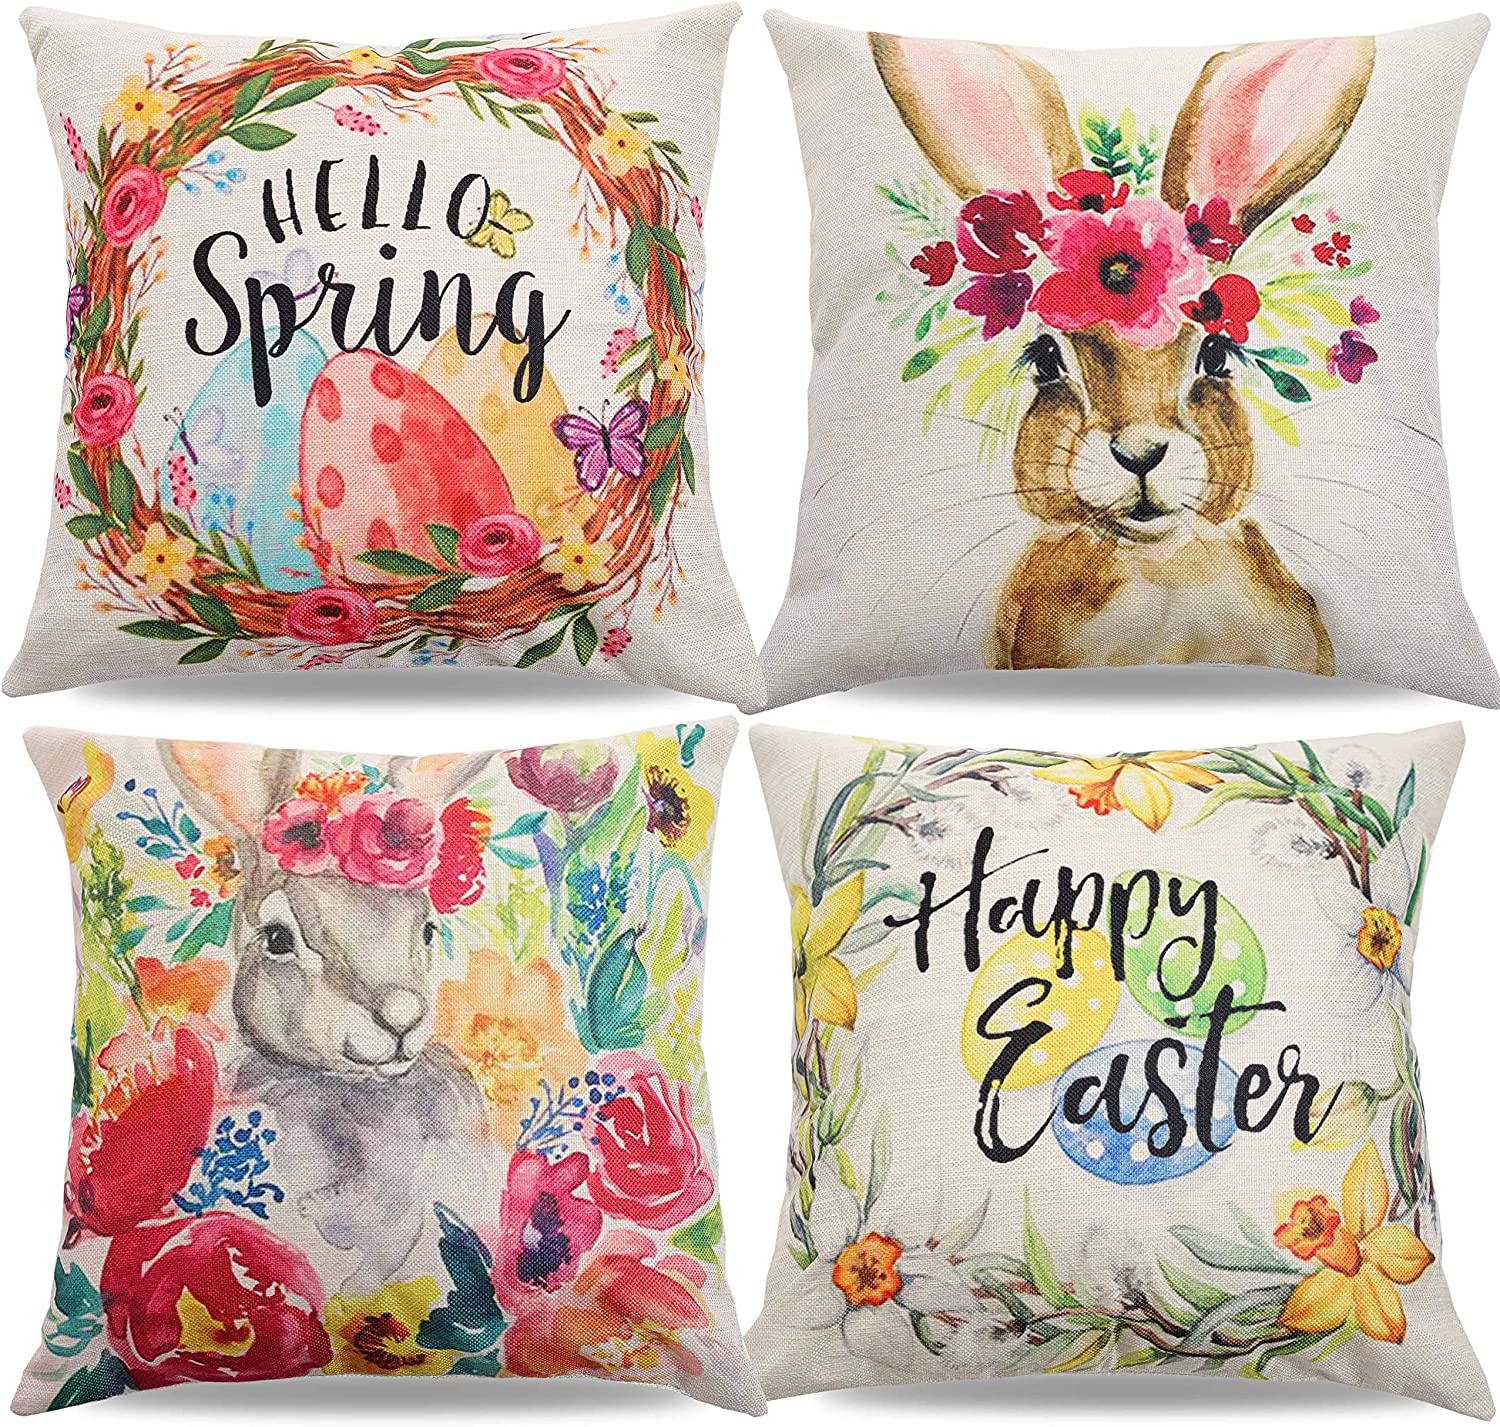 CYNOSA Easter Pillow Covers 18x18 Inches Set of 4 for Easter Decor, Rabbit Bunny Wreath Eggs Cotton Linen Sofa Bed Throw Pillow Case Cushion Cover Home Decorations